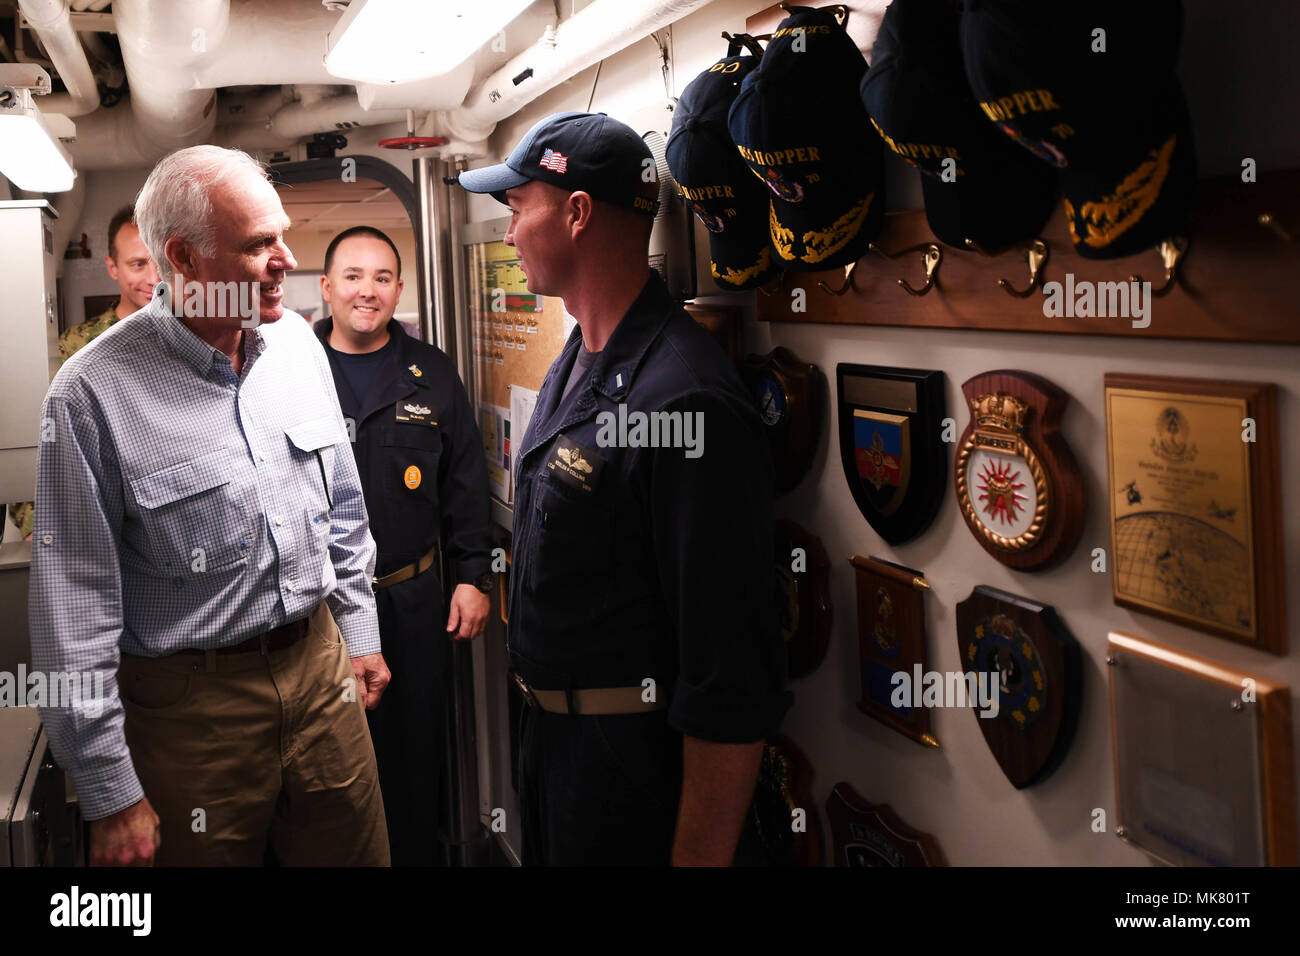 ARABIAN GULF (Nov. 23, 2017) Secretary of the Navy Richard V. Spencer greets Lt. j.g. Keelen Collins, the navigator aboard the Arleigh Burke-class guided-missile destroyer USS Hopper (DDG 70), during a visit to the ship on Thanksgiving Day. Hopper is deployed to the U.S. 5th Fleet area of operations in support of maritime security operations to reassure allies and partners and preserve the freedom of navigation and the free flow of commerce in the region. (U.S. Navy photo by Mass Communication Specialist 2nd Class Kristina Young/Released) - Stock Image